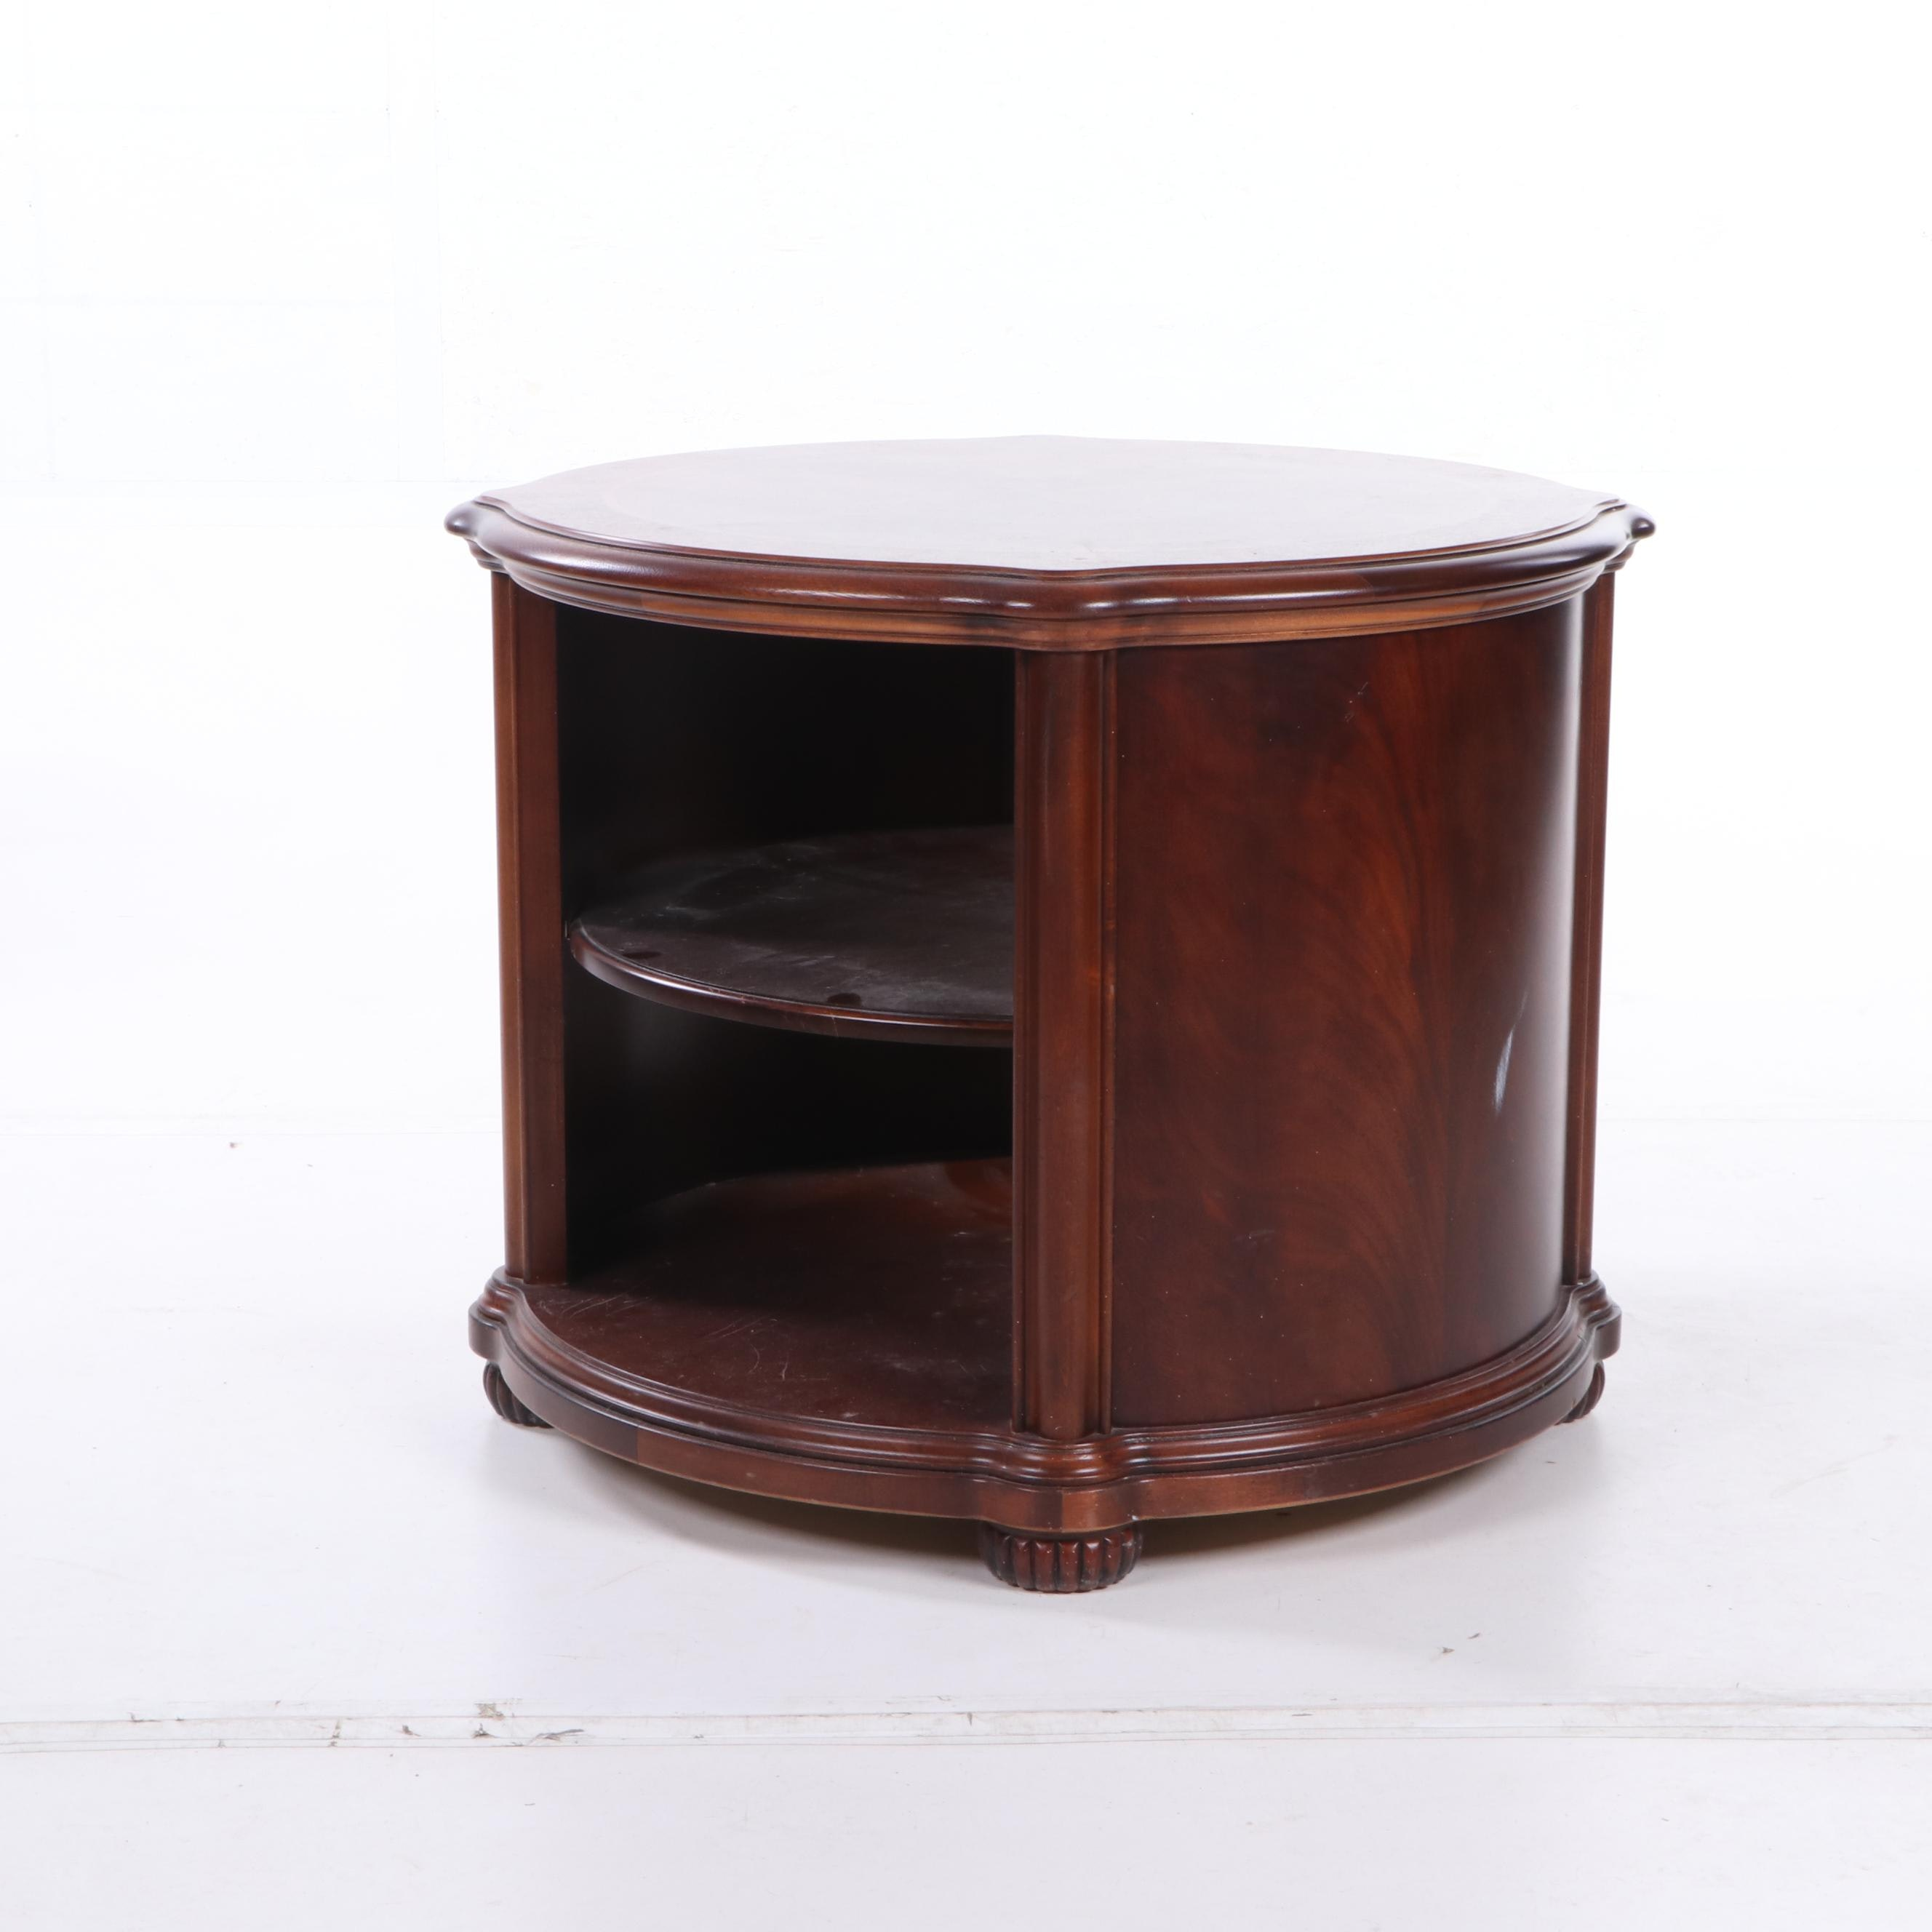 Round Figured Mahagany Side Table, 20th Century